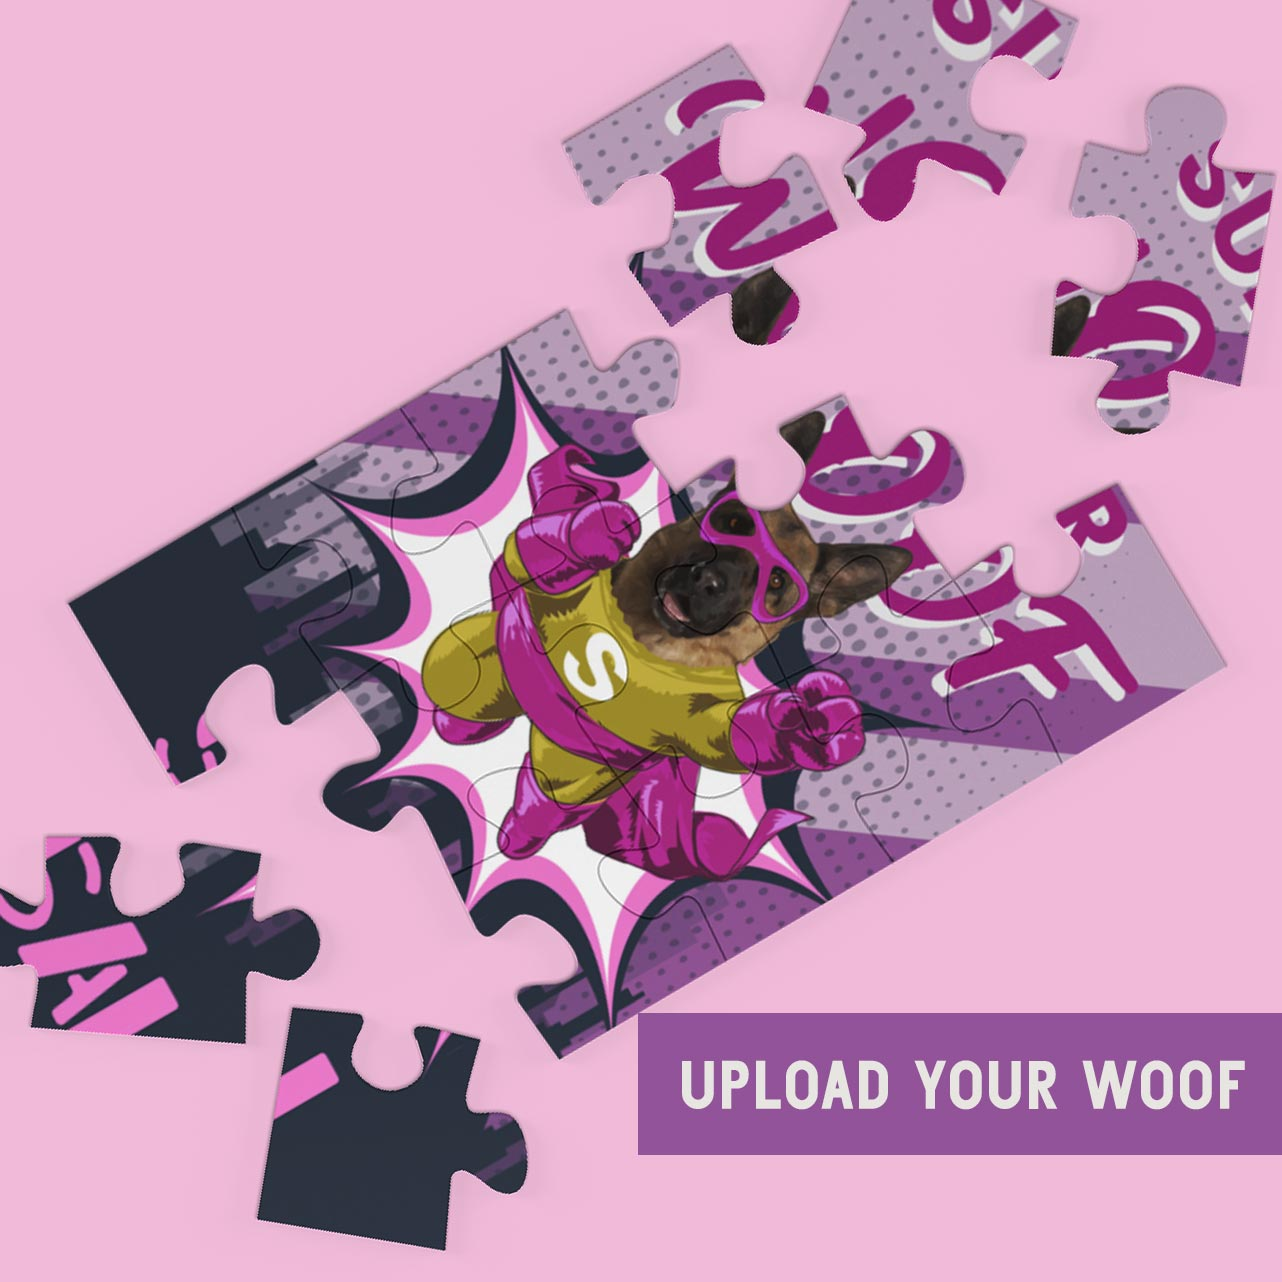 LikeWoof SuperWoof DoggyGirl Puzzle - likewoof